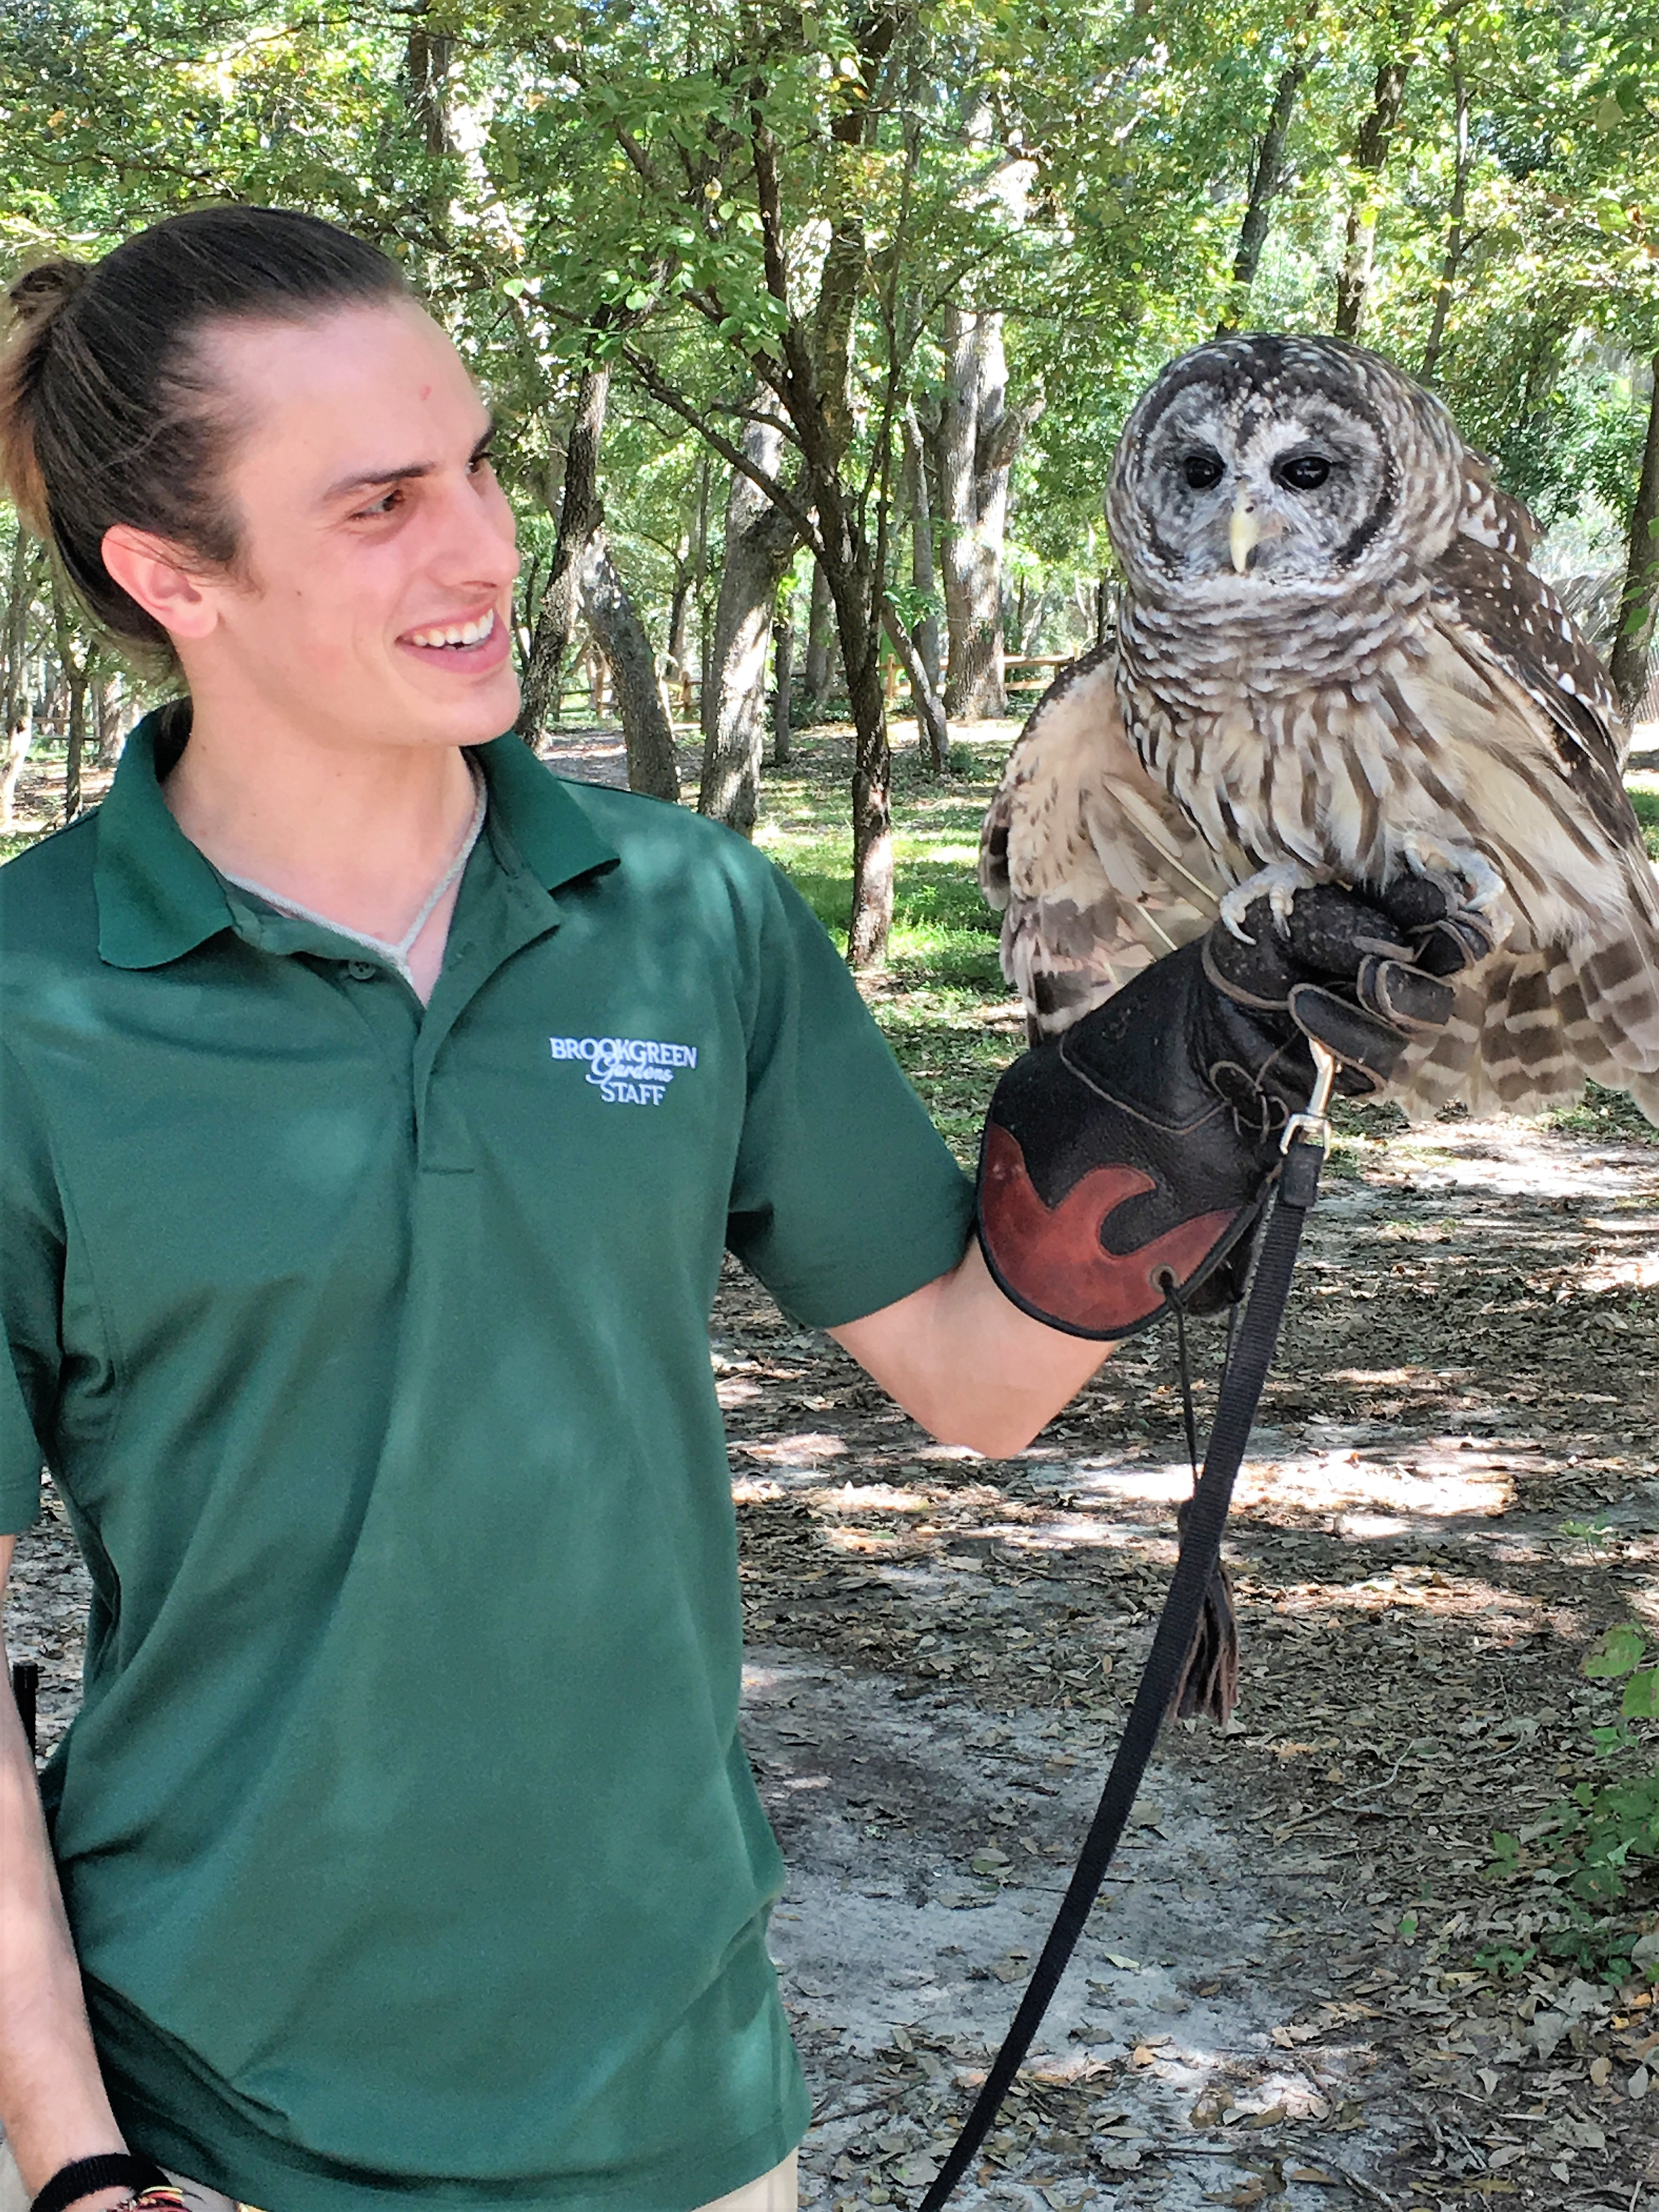 Brookgreen zookeeper with owl